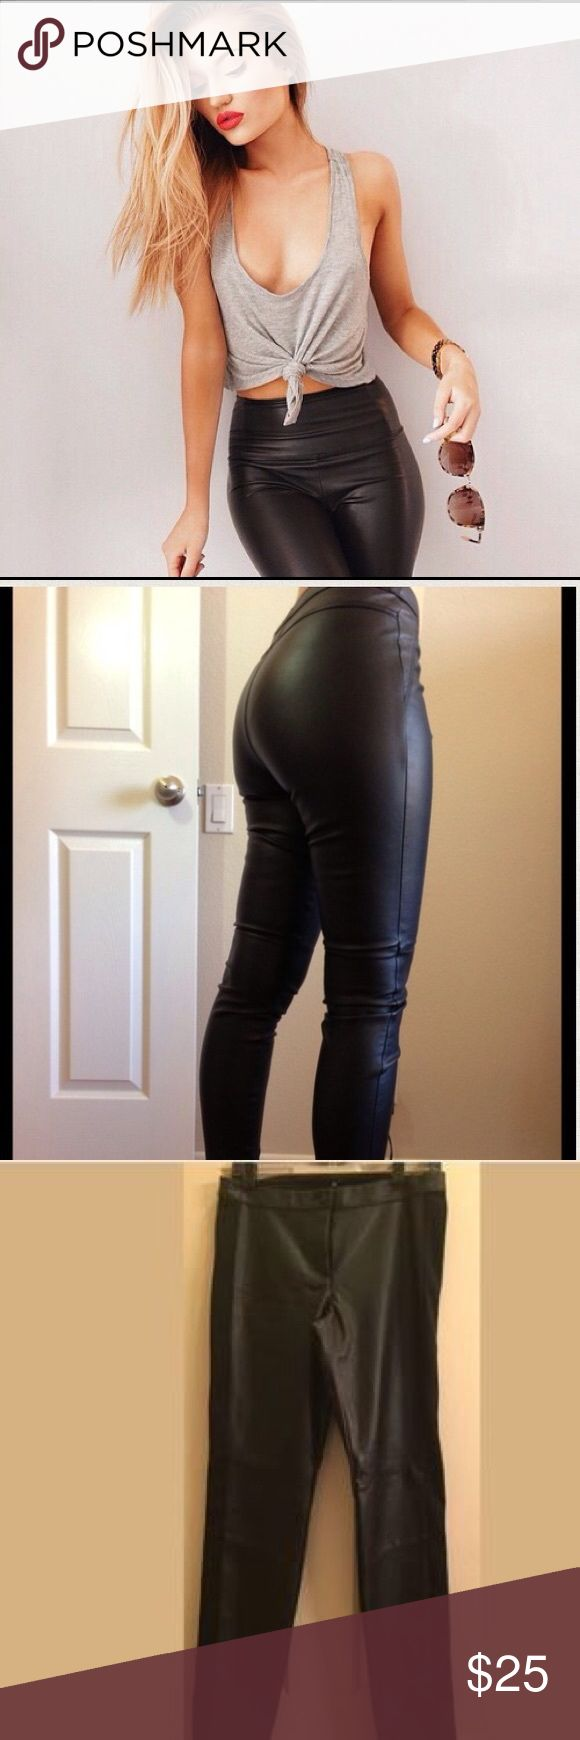 Leather High Waisted Leggings  Leather High Waisted Leggings. NWOT. Size small. Run a little longer. I'm short so they look cute kind of bunched up at the bottom with high heels. Super sexy, makes your butt look amazing!! Emerald Sundae Pants Leggings